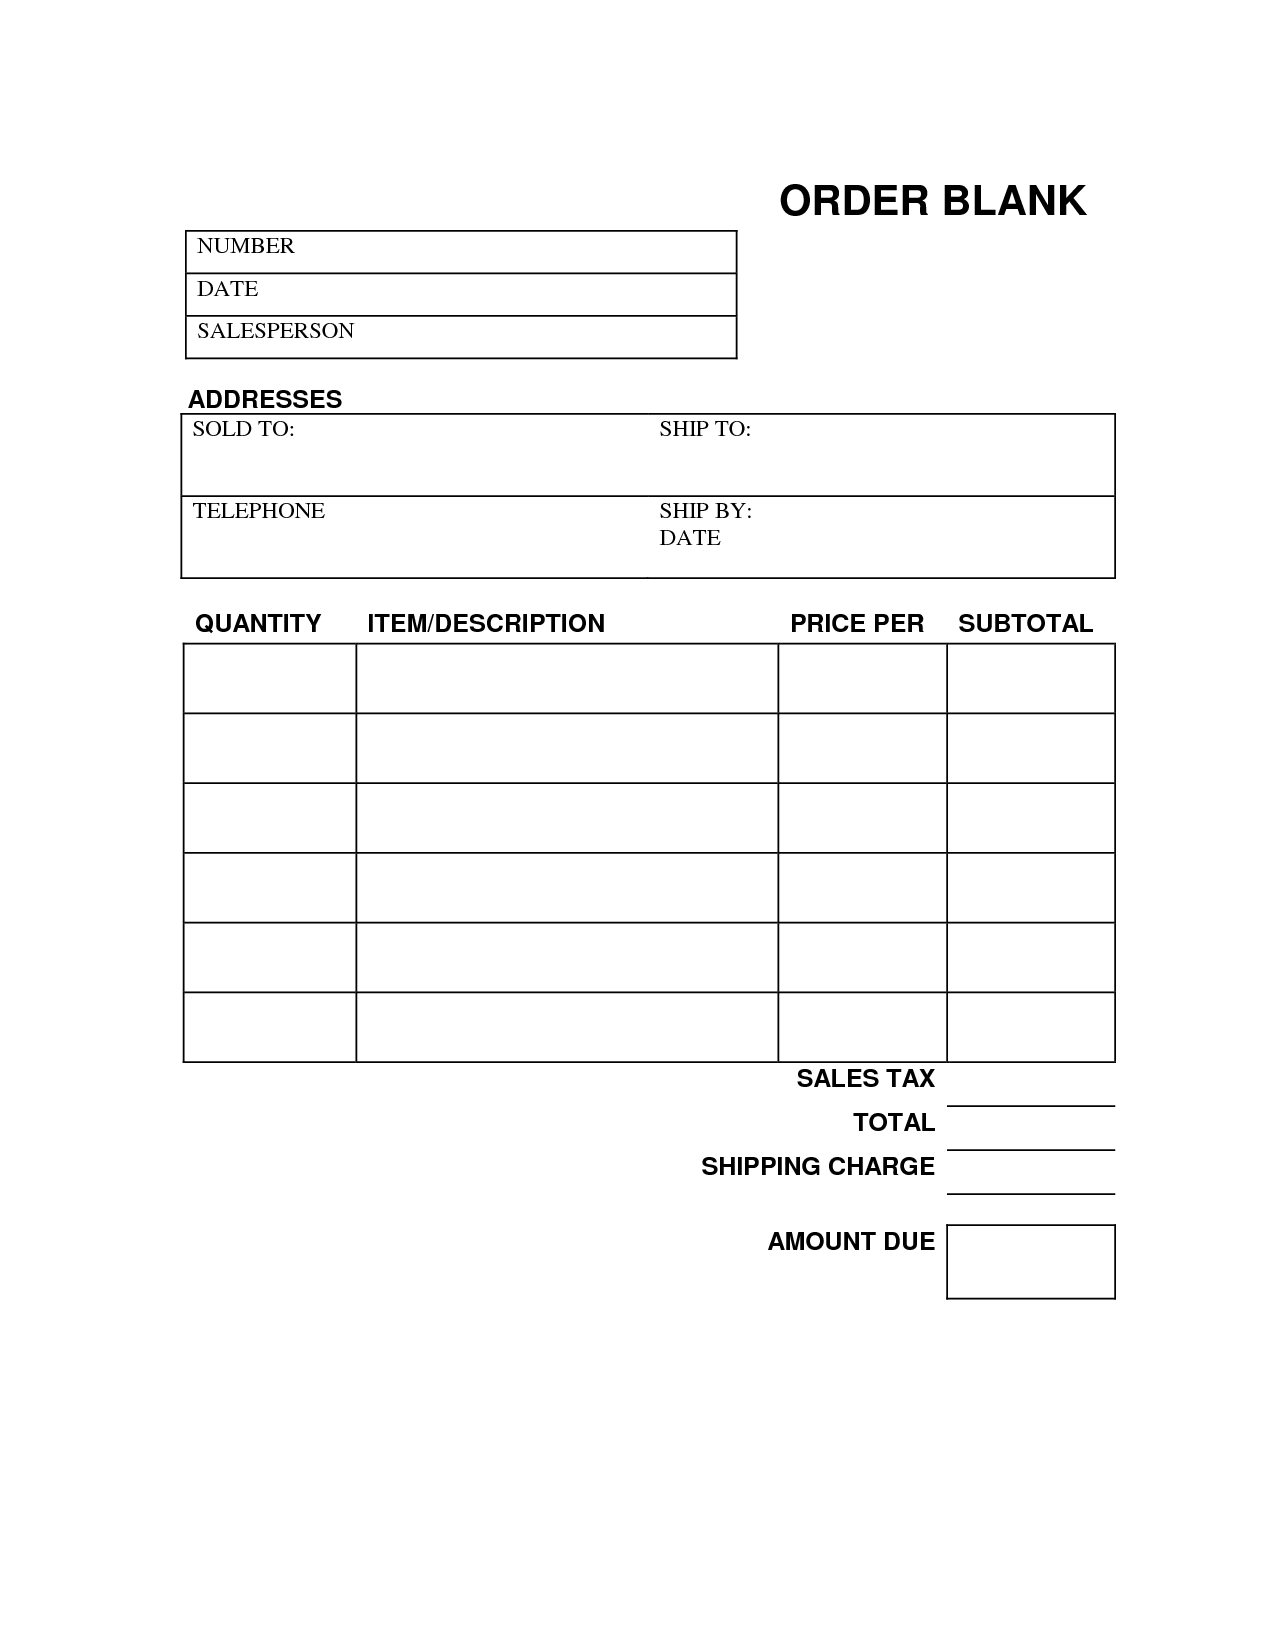 Blank Work Order Form Charlotte Clergy Coalition